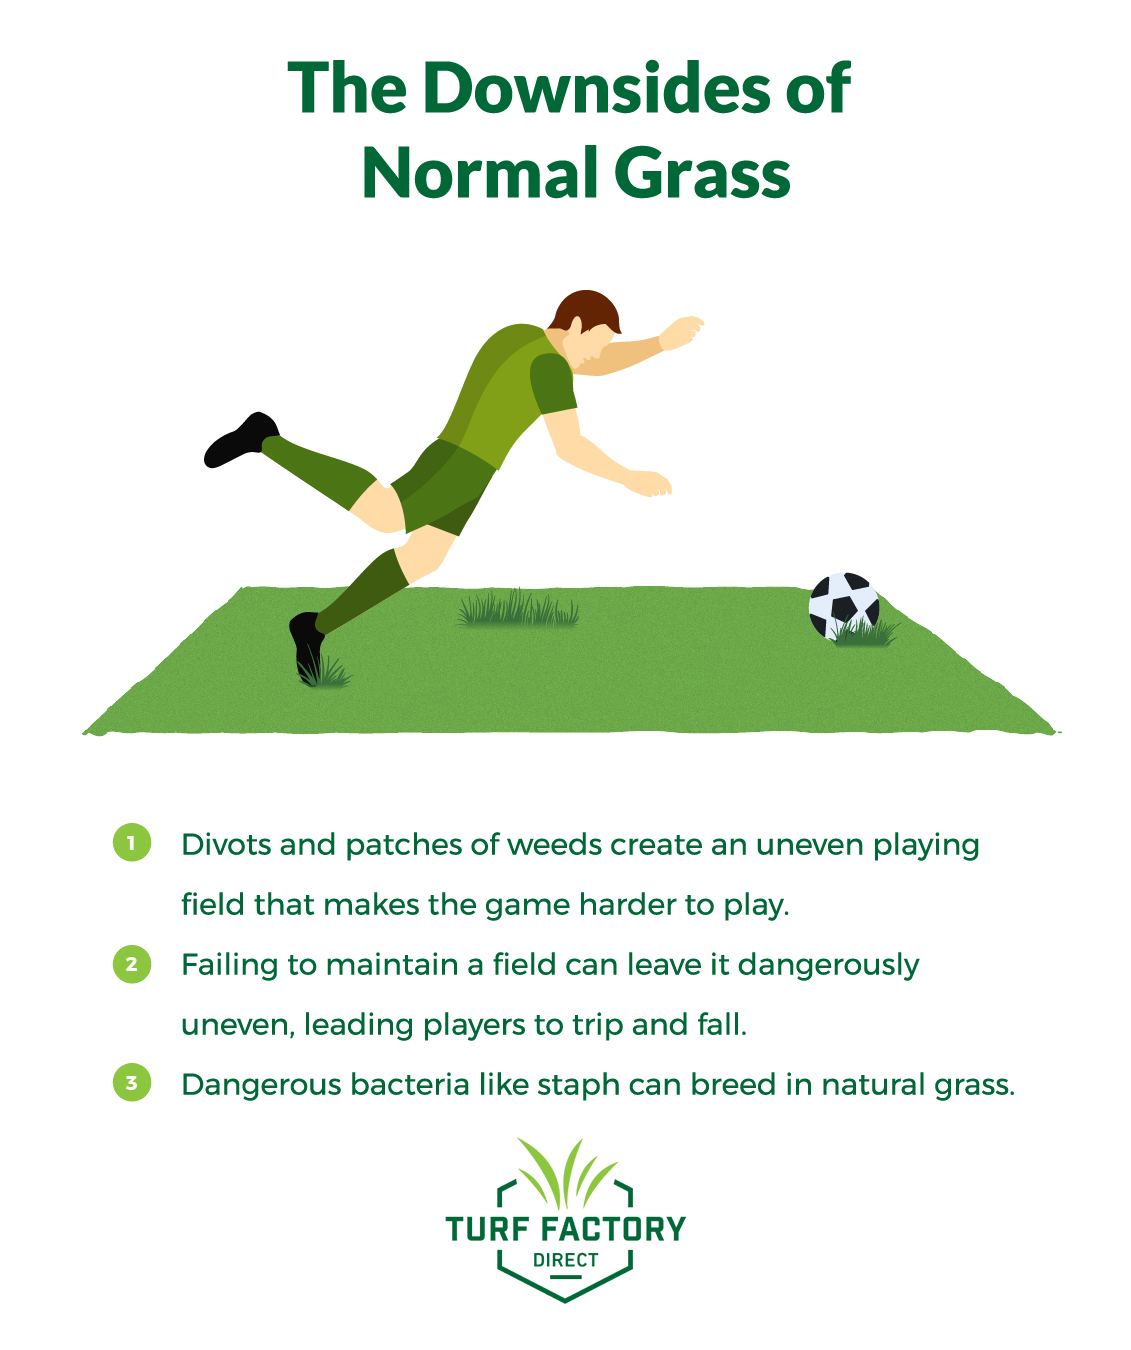 Natural grass can create dangerous divots and cause players to trip and fall.